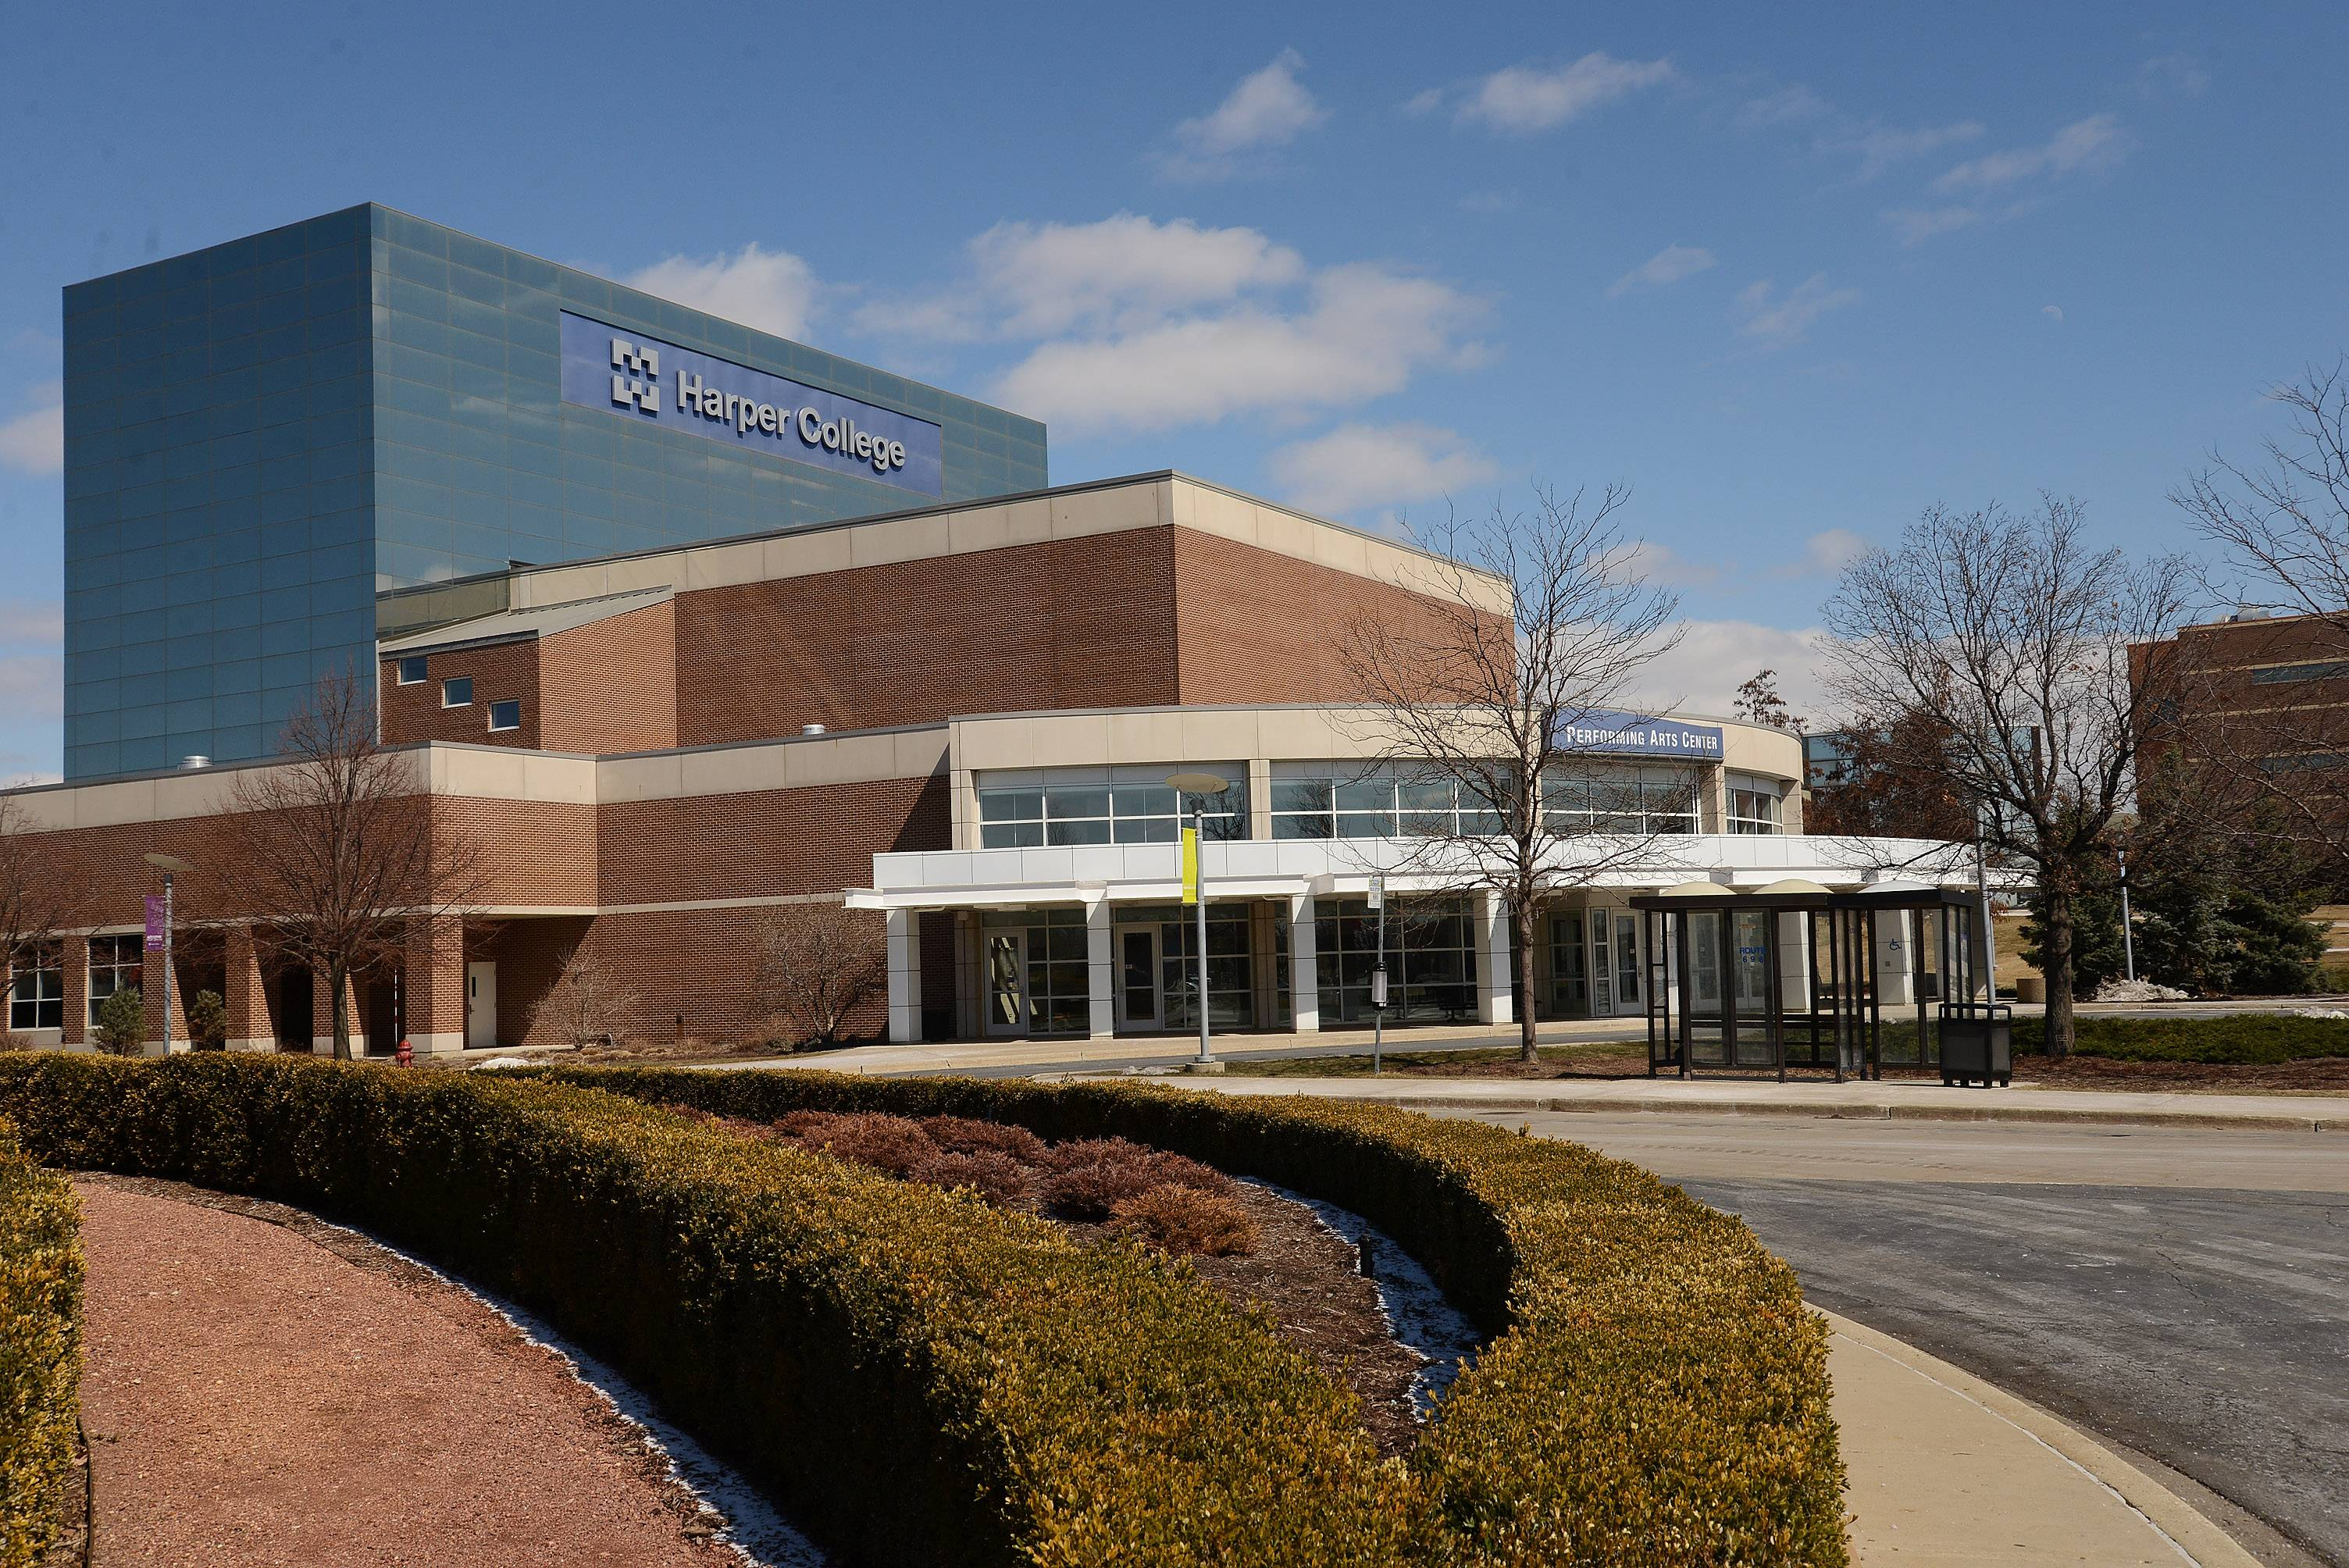 Property taxes are the main revenue source at suburban community colleges. At Harper College in Palatine, property tax revenue rose 35 percent over the past decade, while state funding rose 15 percent.